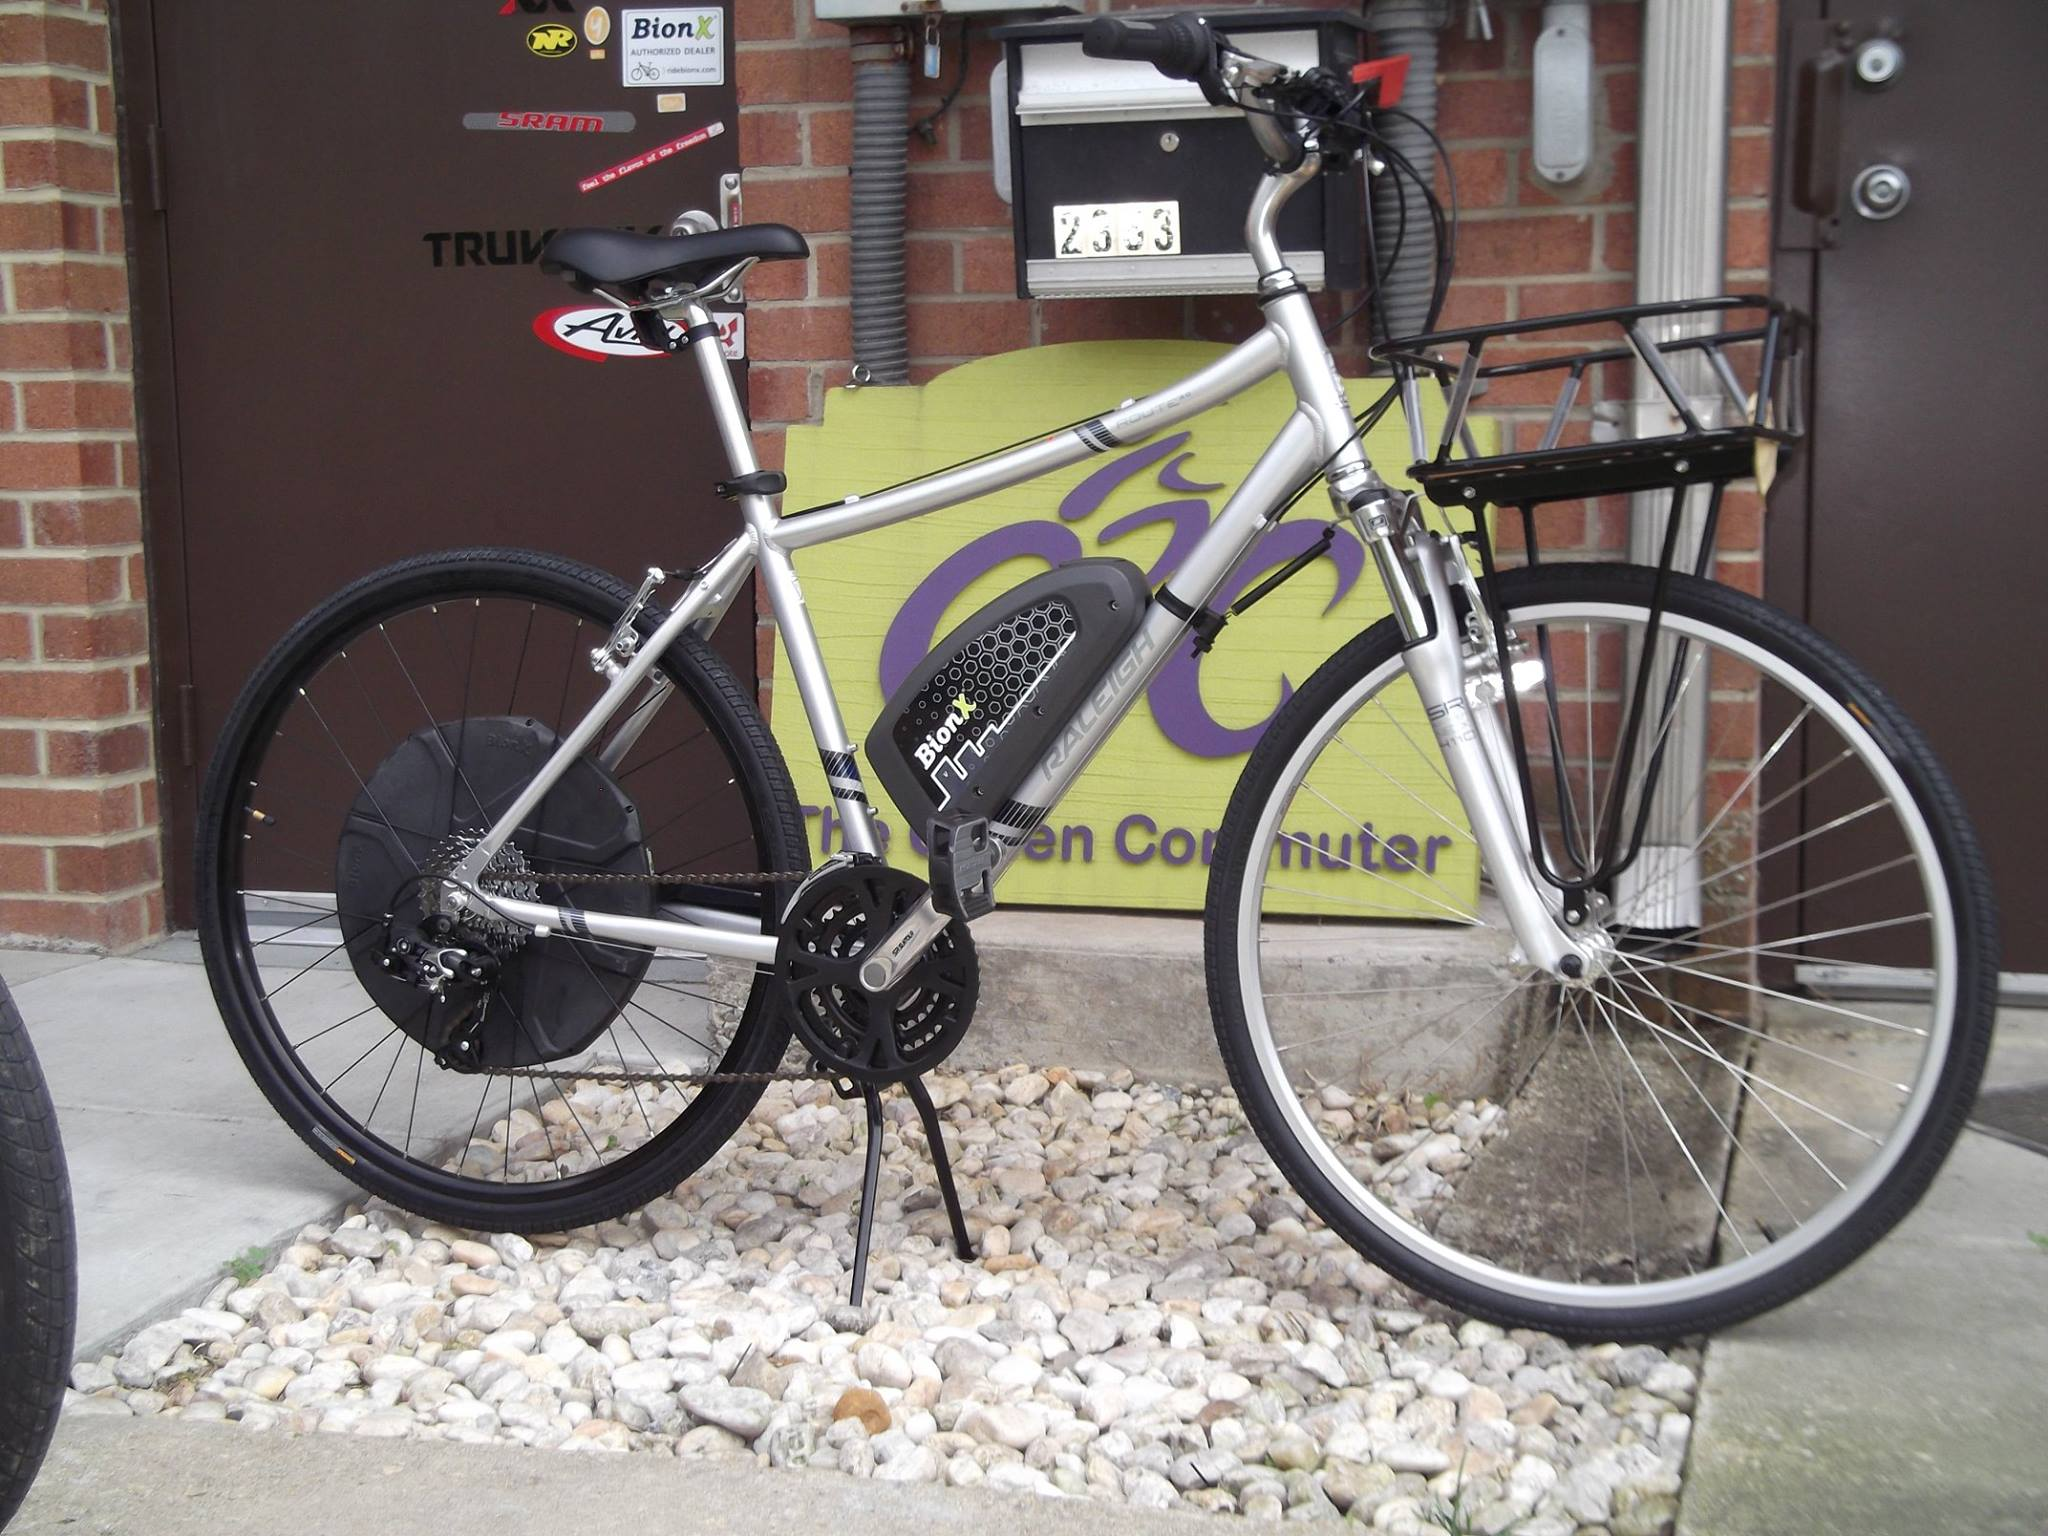 Raleigh Route 3.0 with BionX D500 motor.